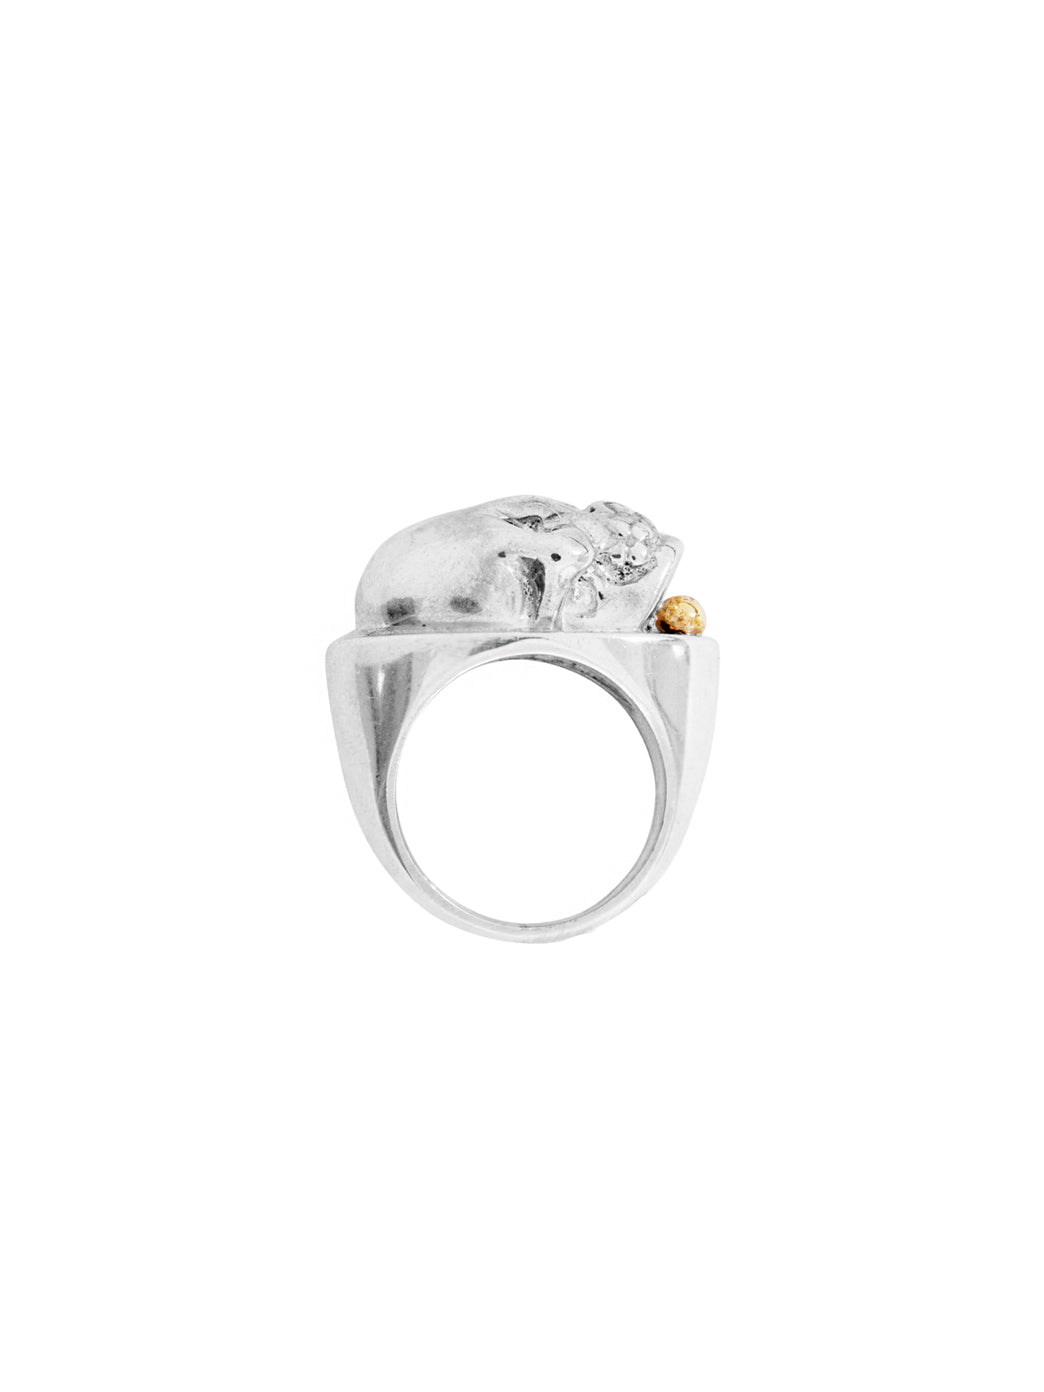 Fiorina Jewellery Silver Skull Ring Side View